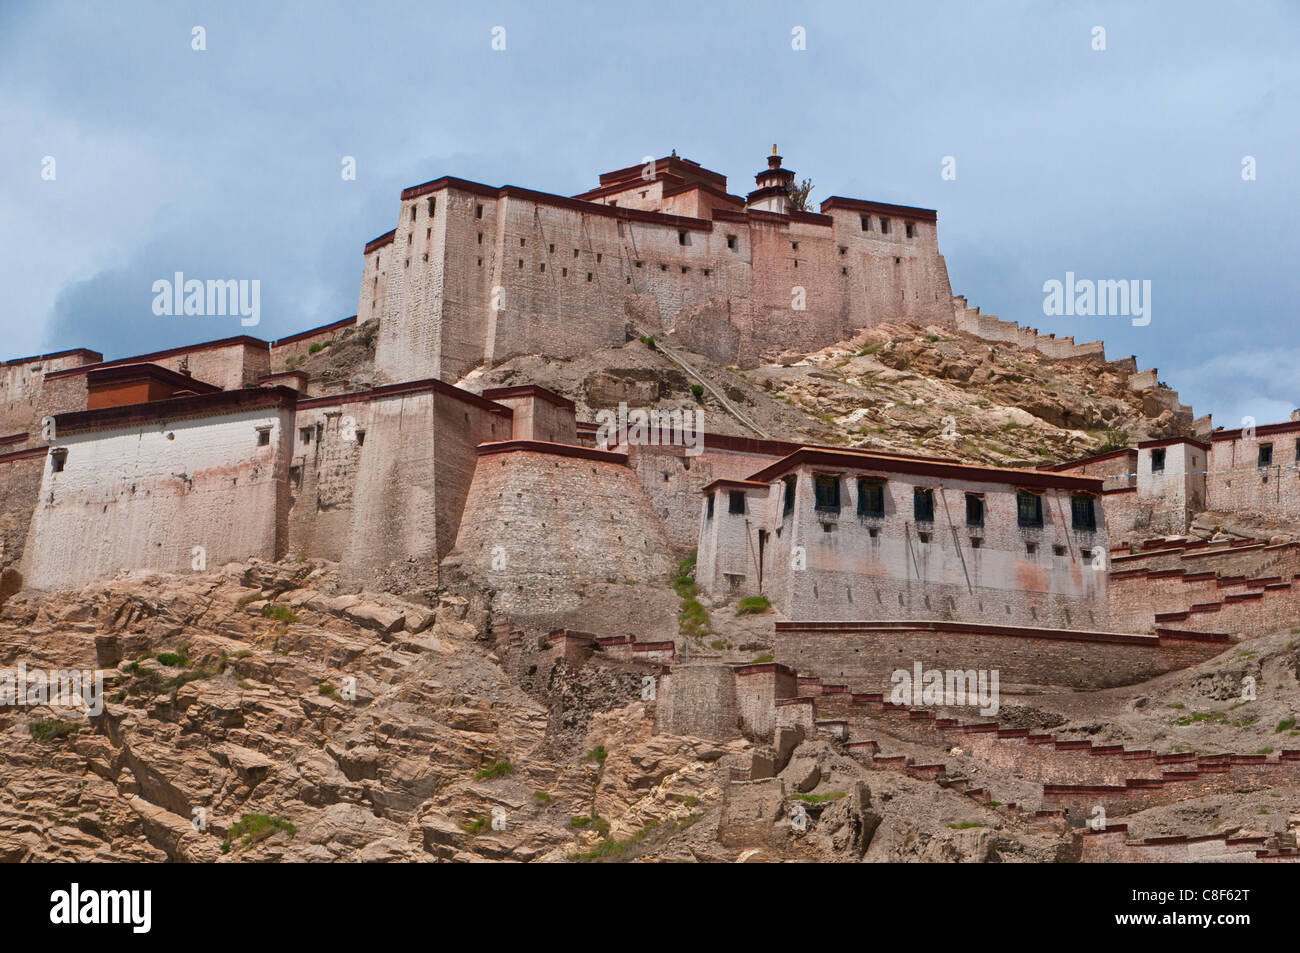 The dzong (fortress) of Gyantse, Tibet, China - Stock Image